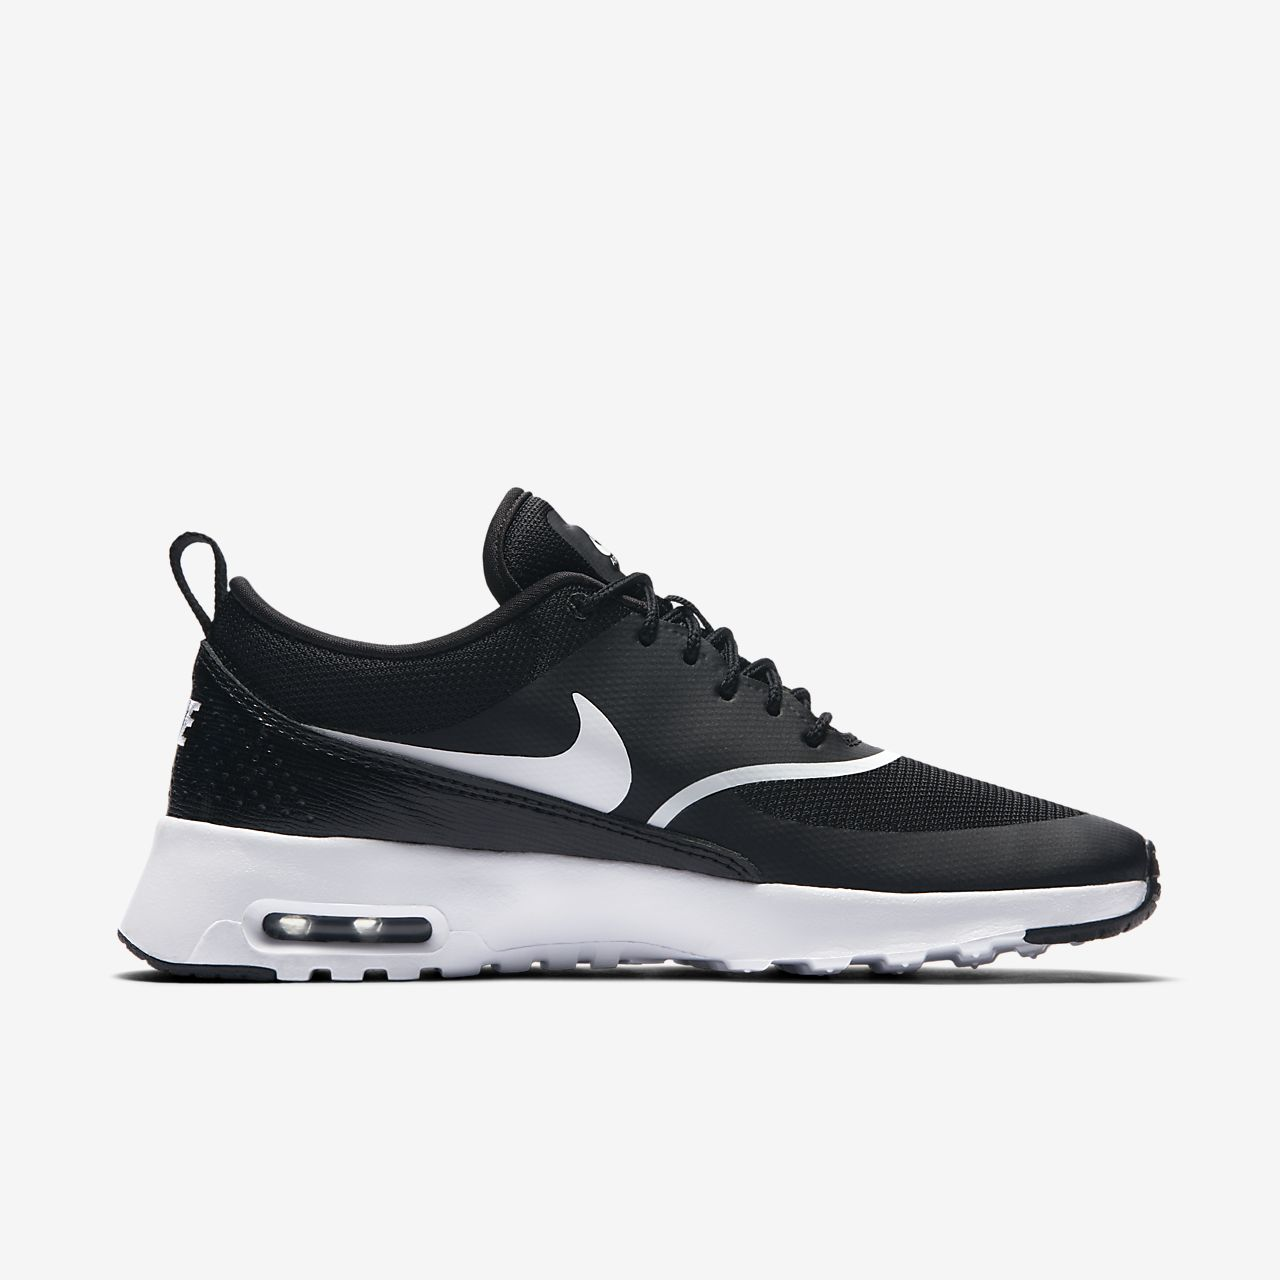 new products 38eab 8229e Women s Shoe. Nike Air Max Thea